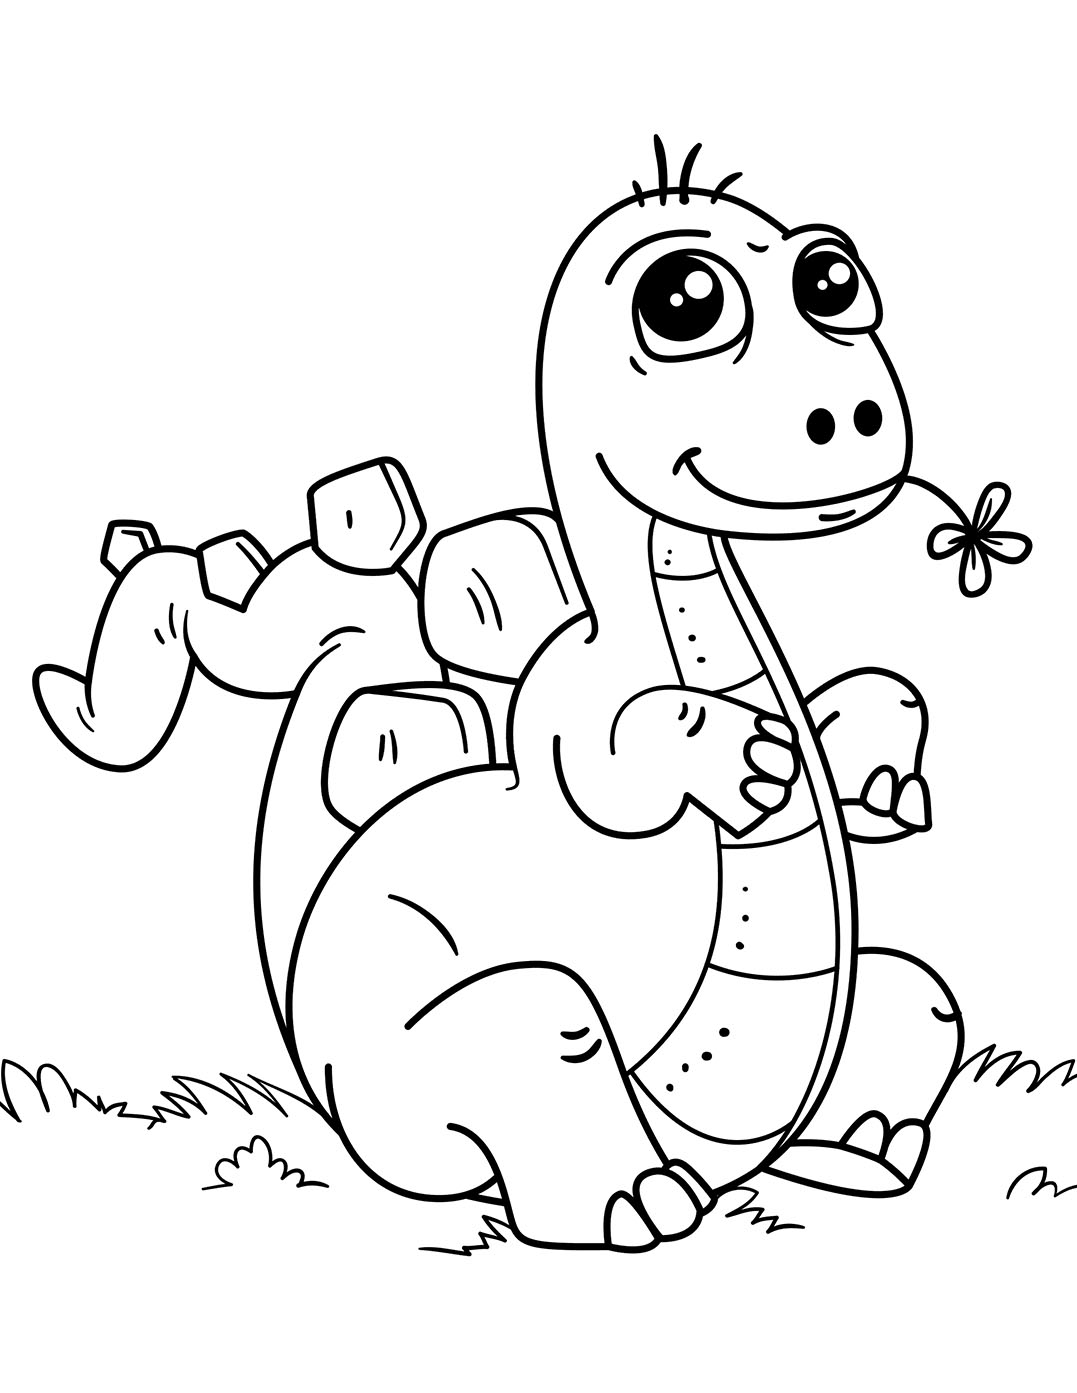 dinosaurs colouring pages dinosaurs coloring pages collection free coloring sheets dinosaurs colouring pages